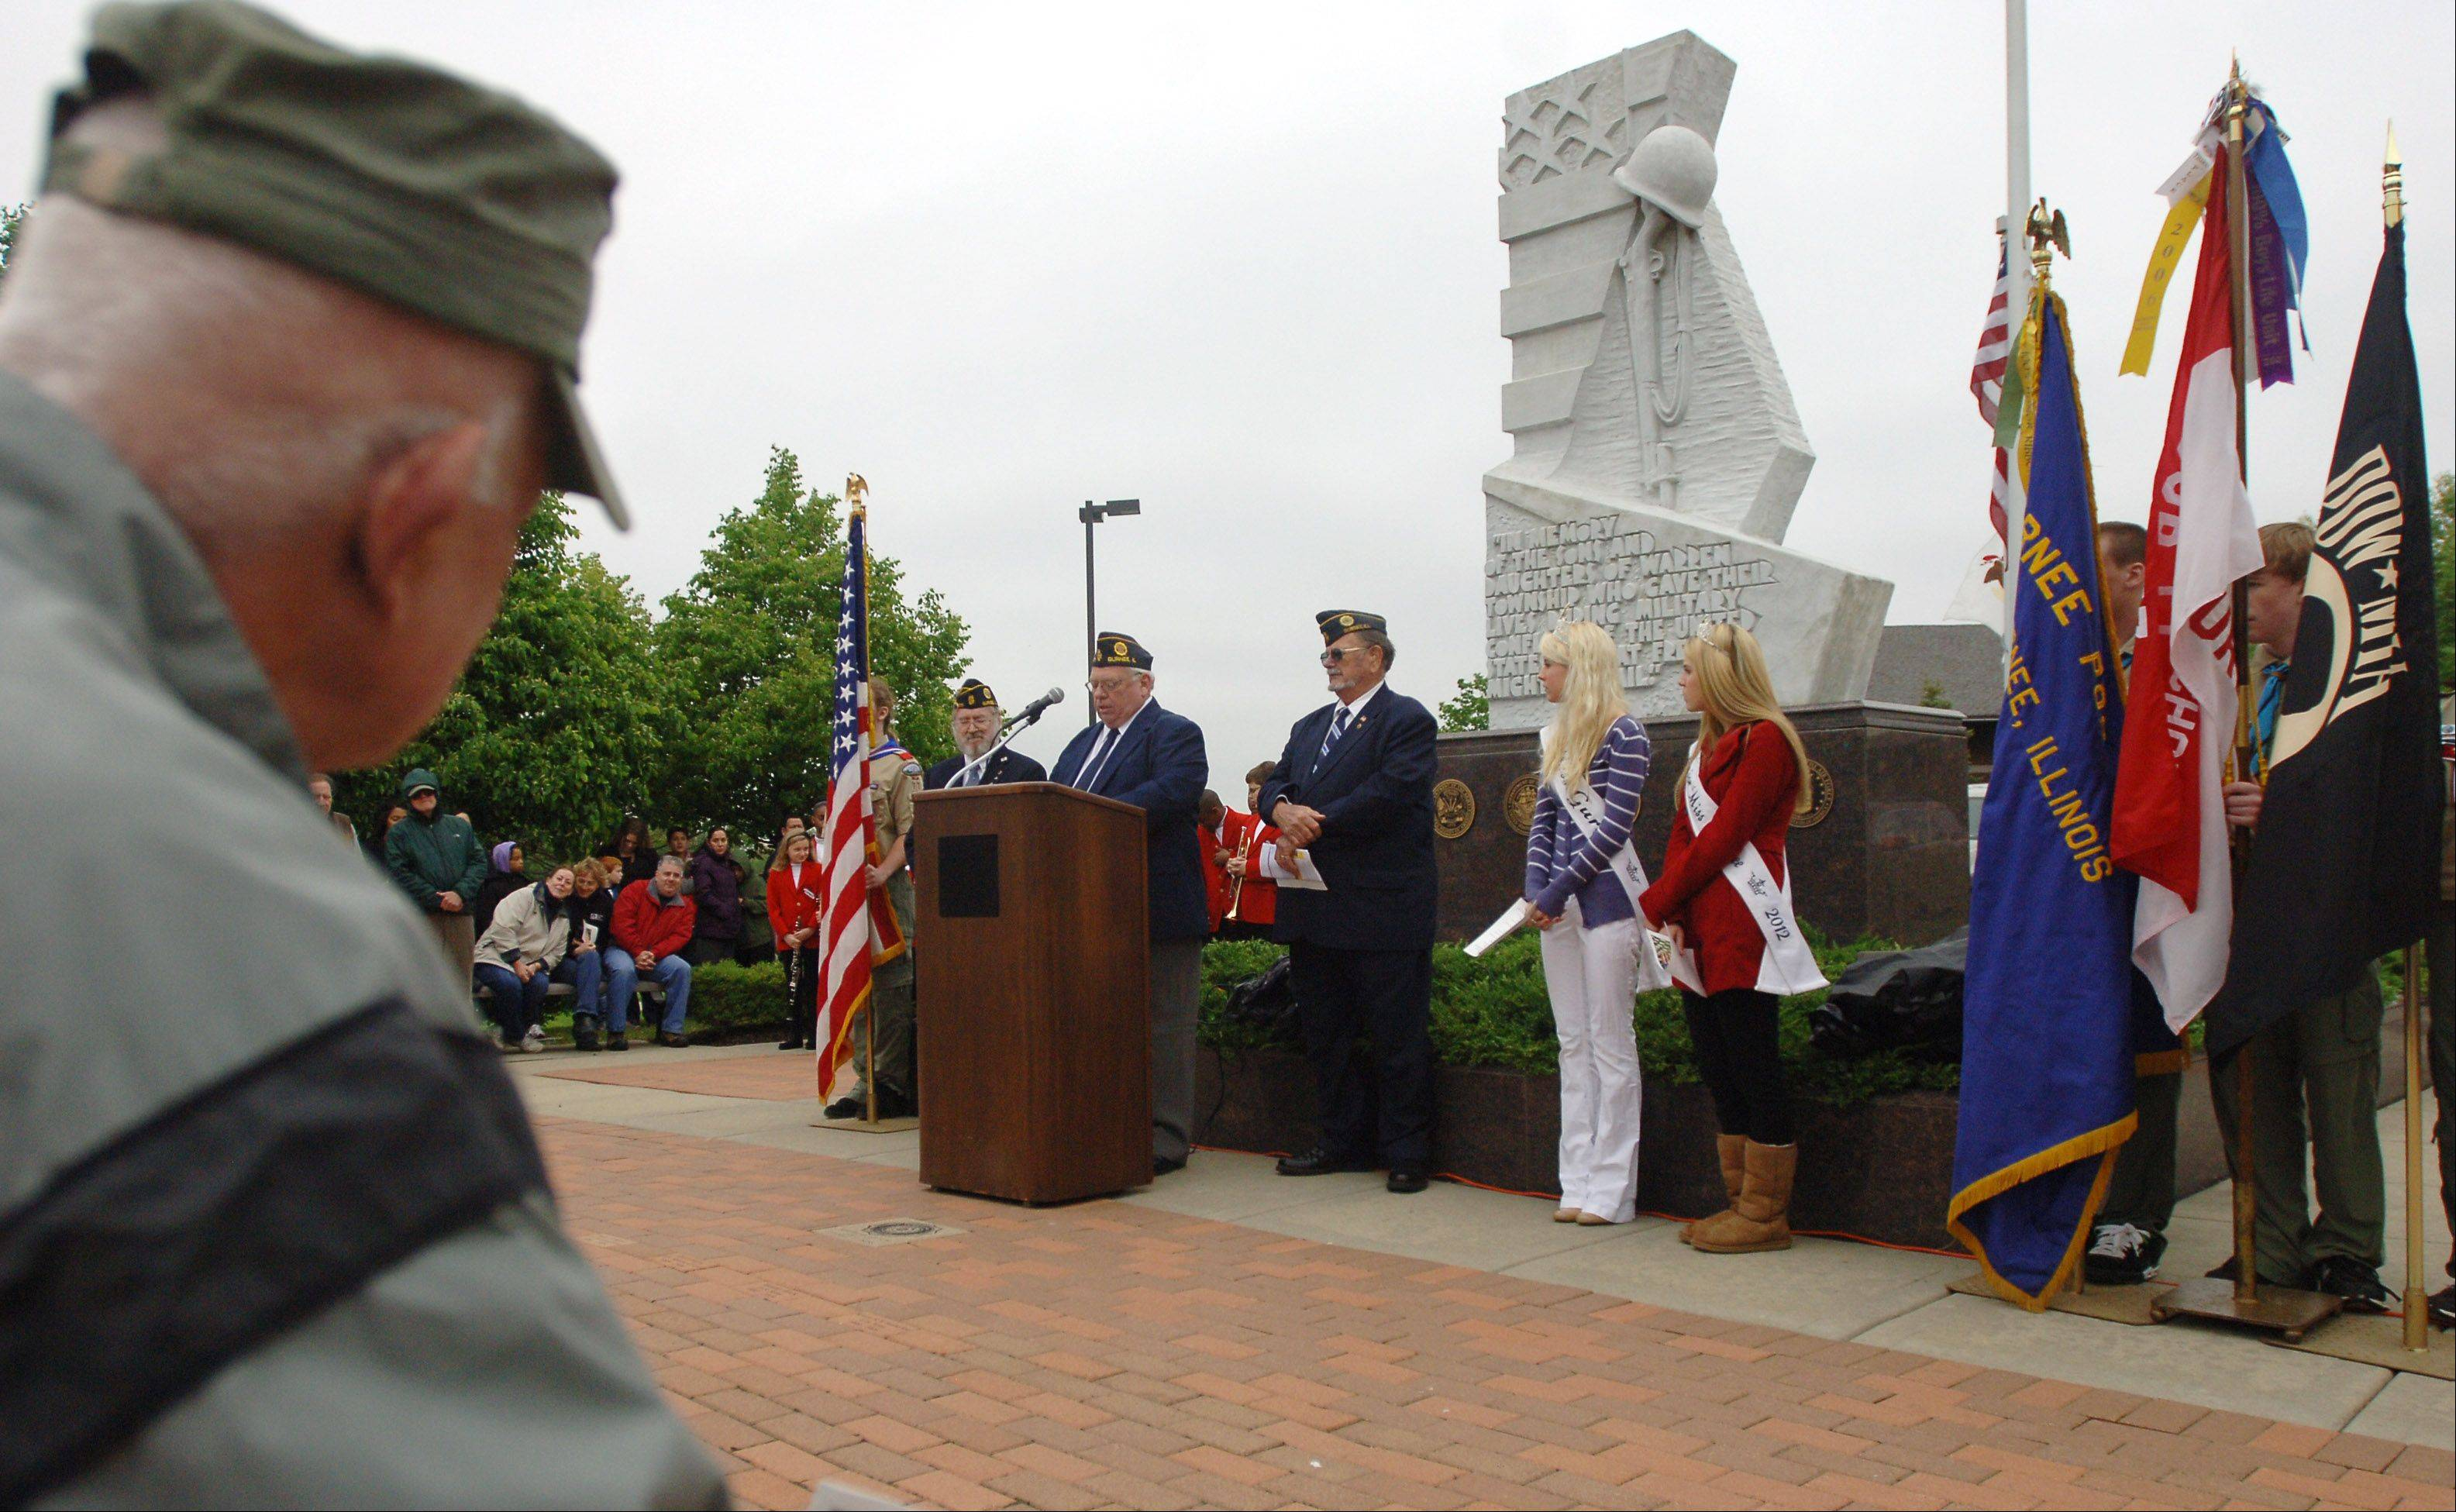 Gurnee held its Memorial Day ceremony at Veterans Memorial Park Monday.